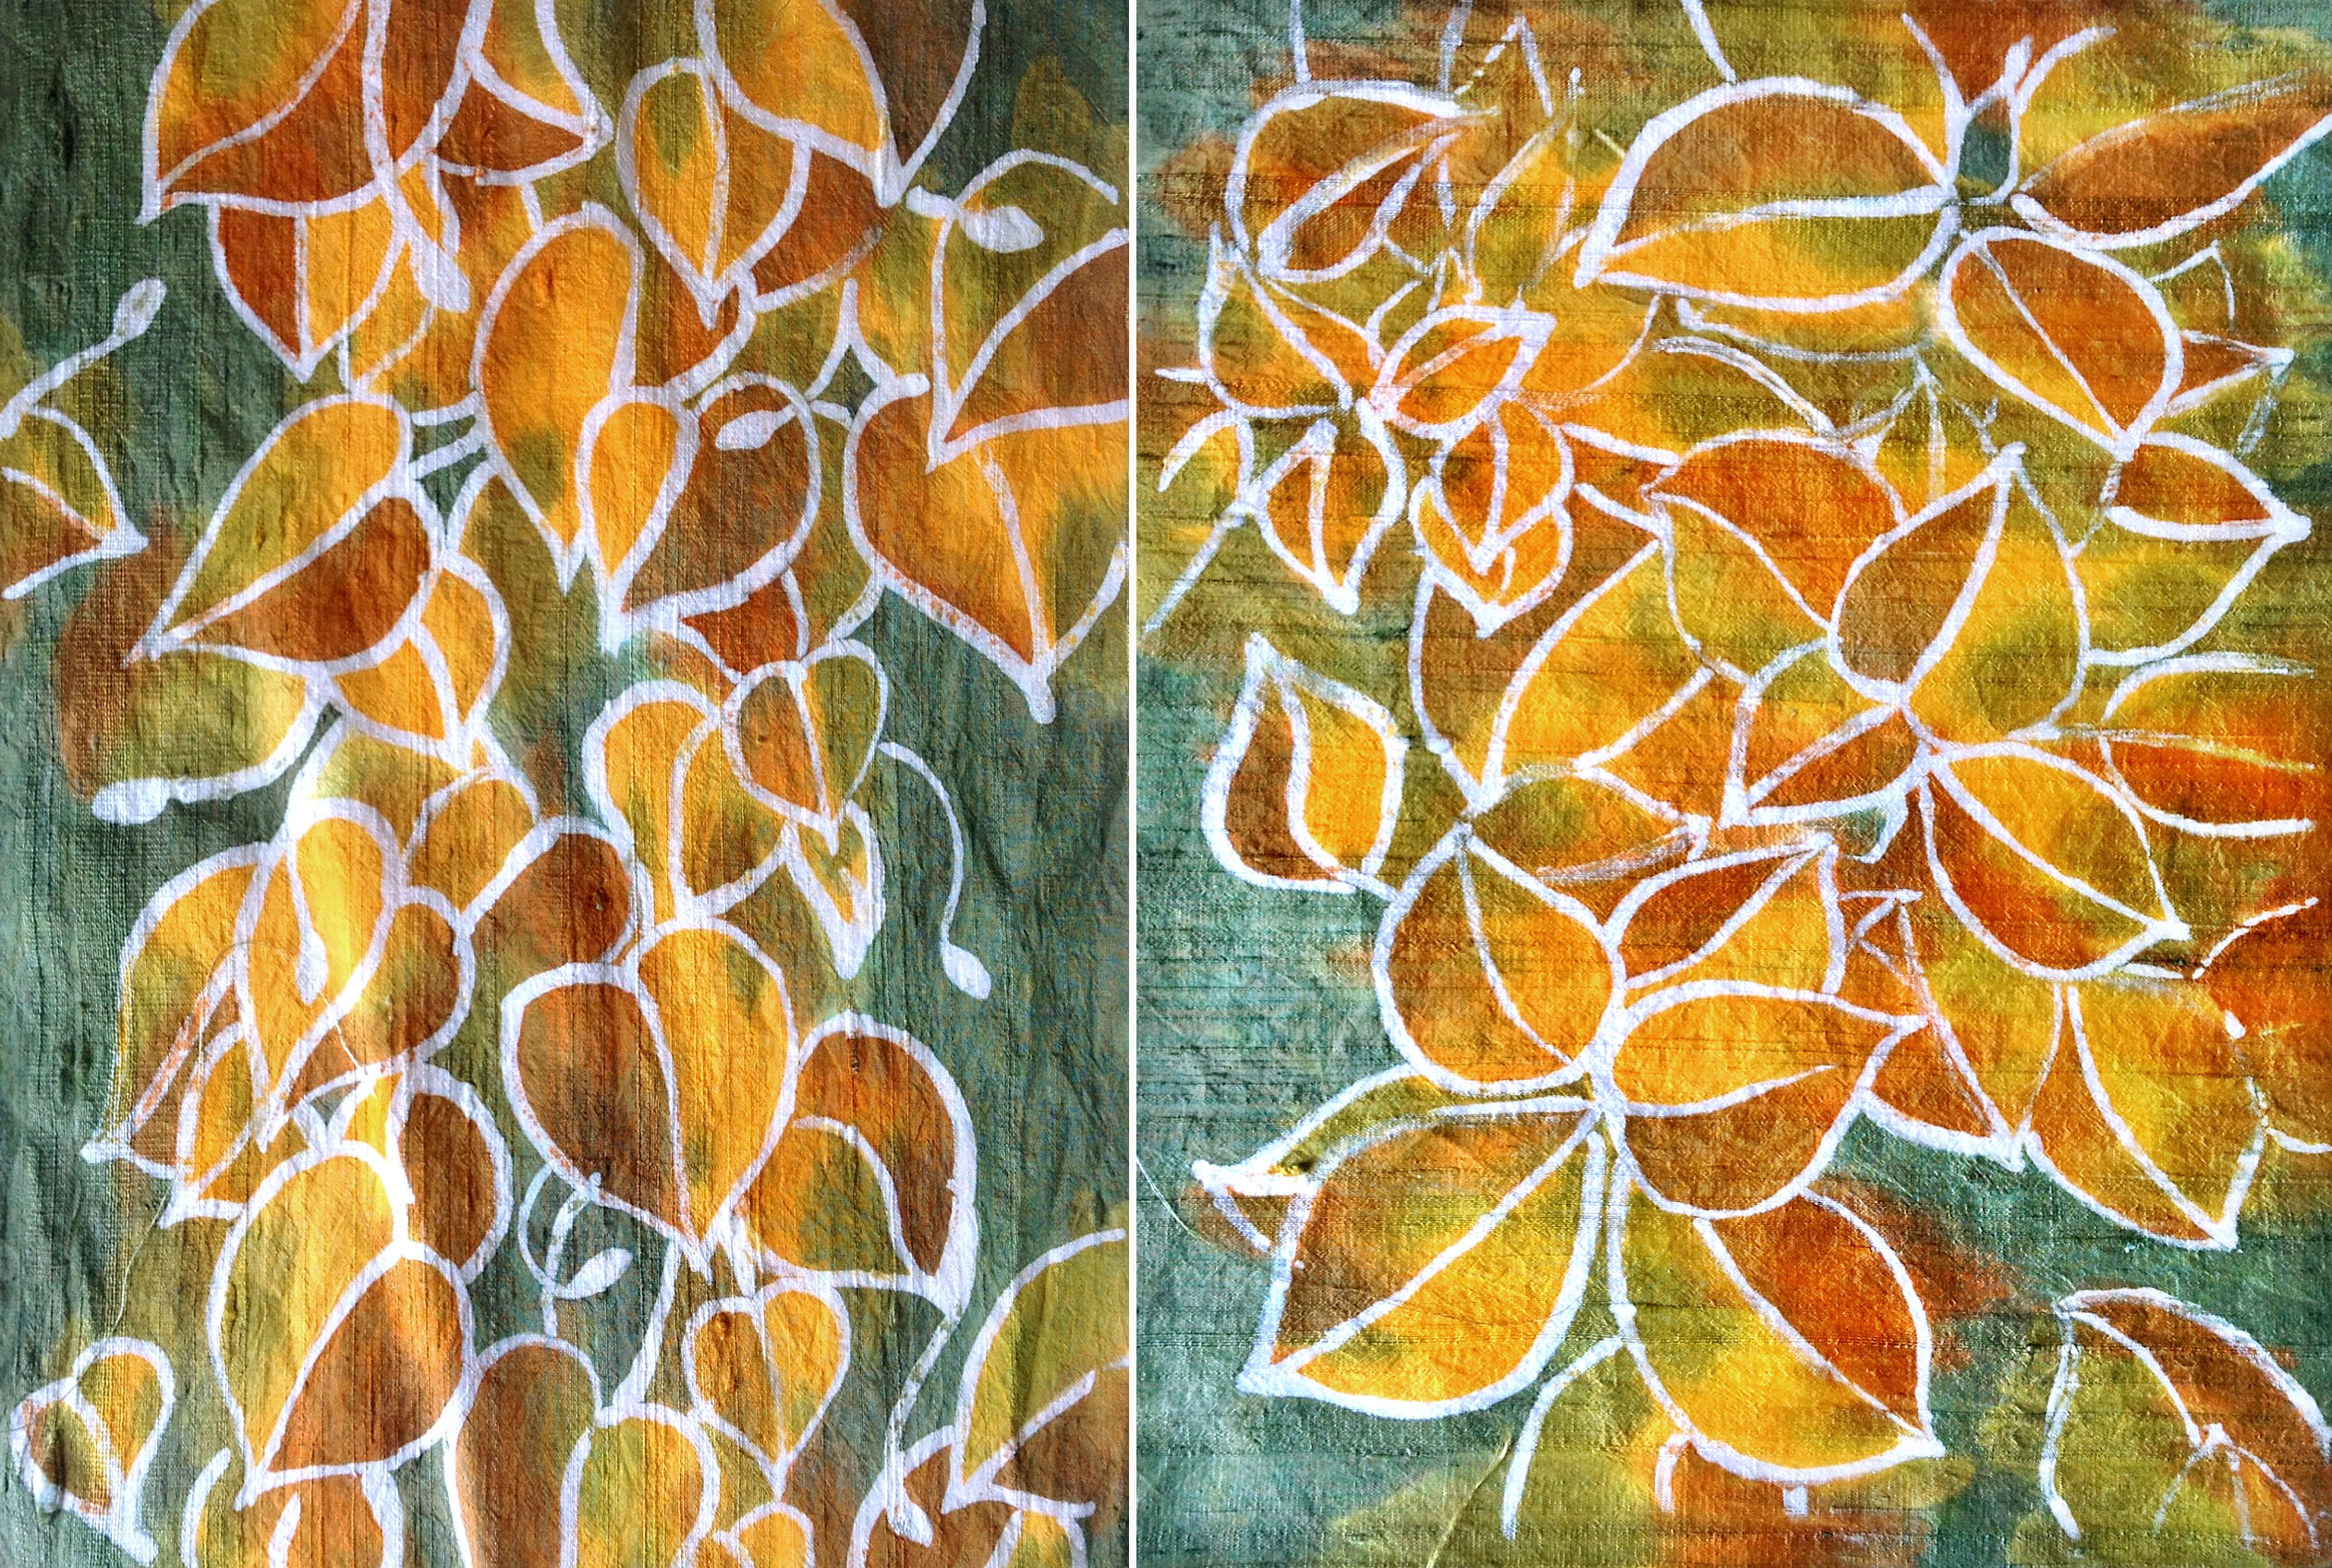 Finished batik quilt panels - morning glory leaves at left and ...